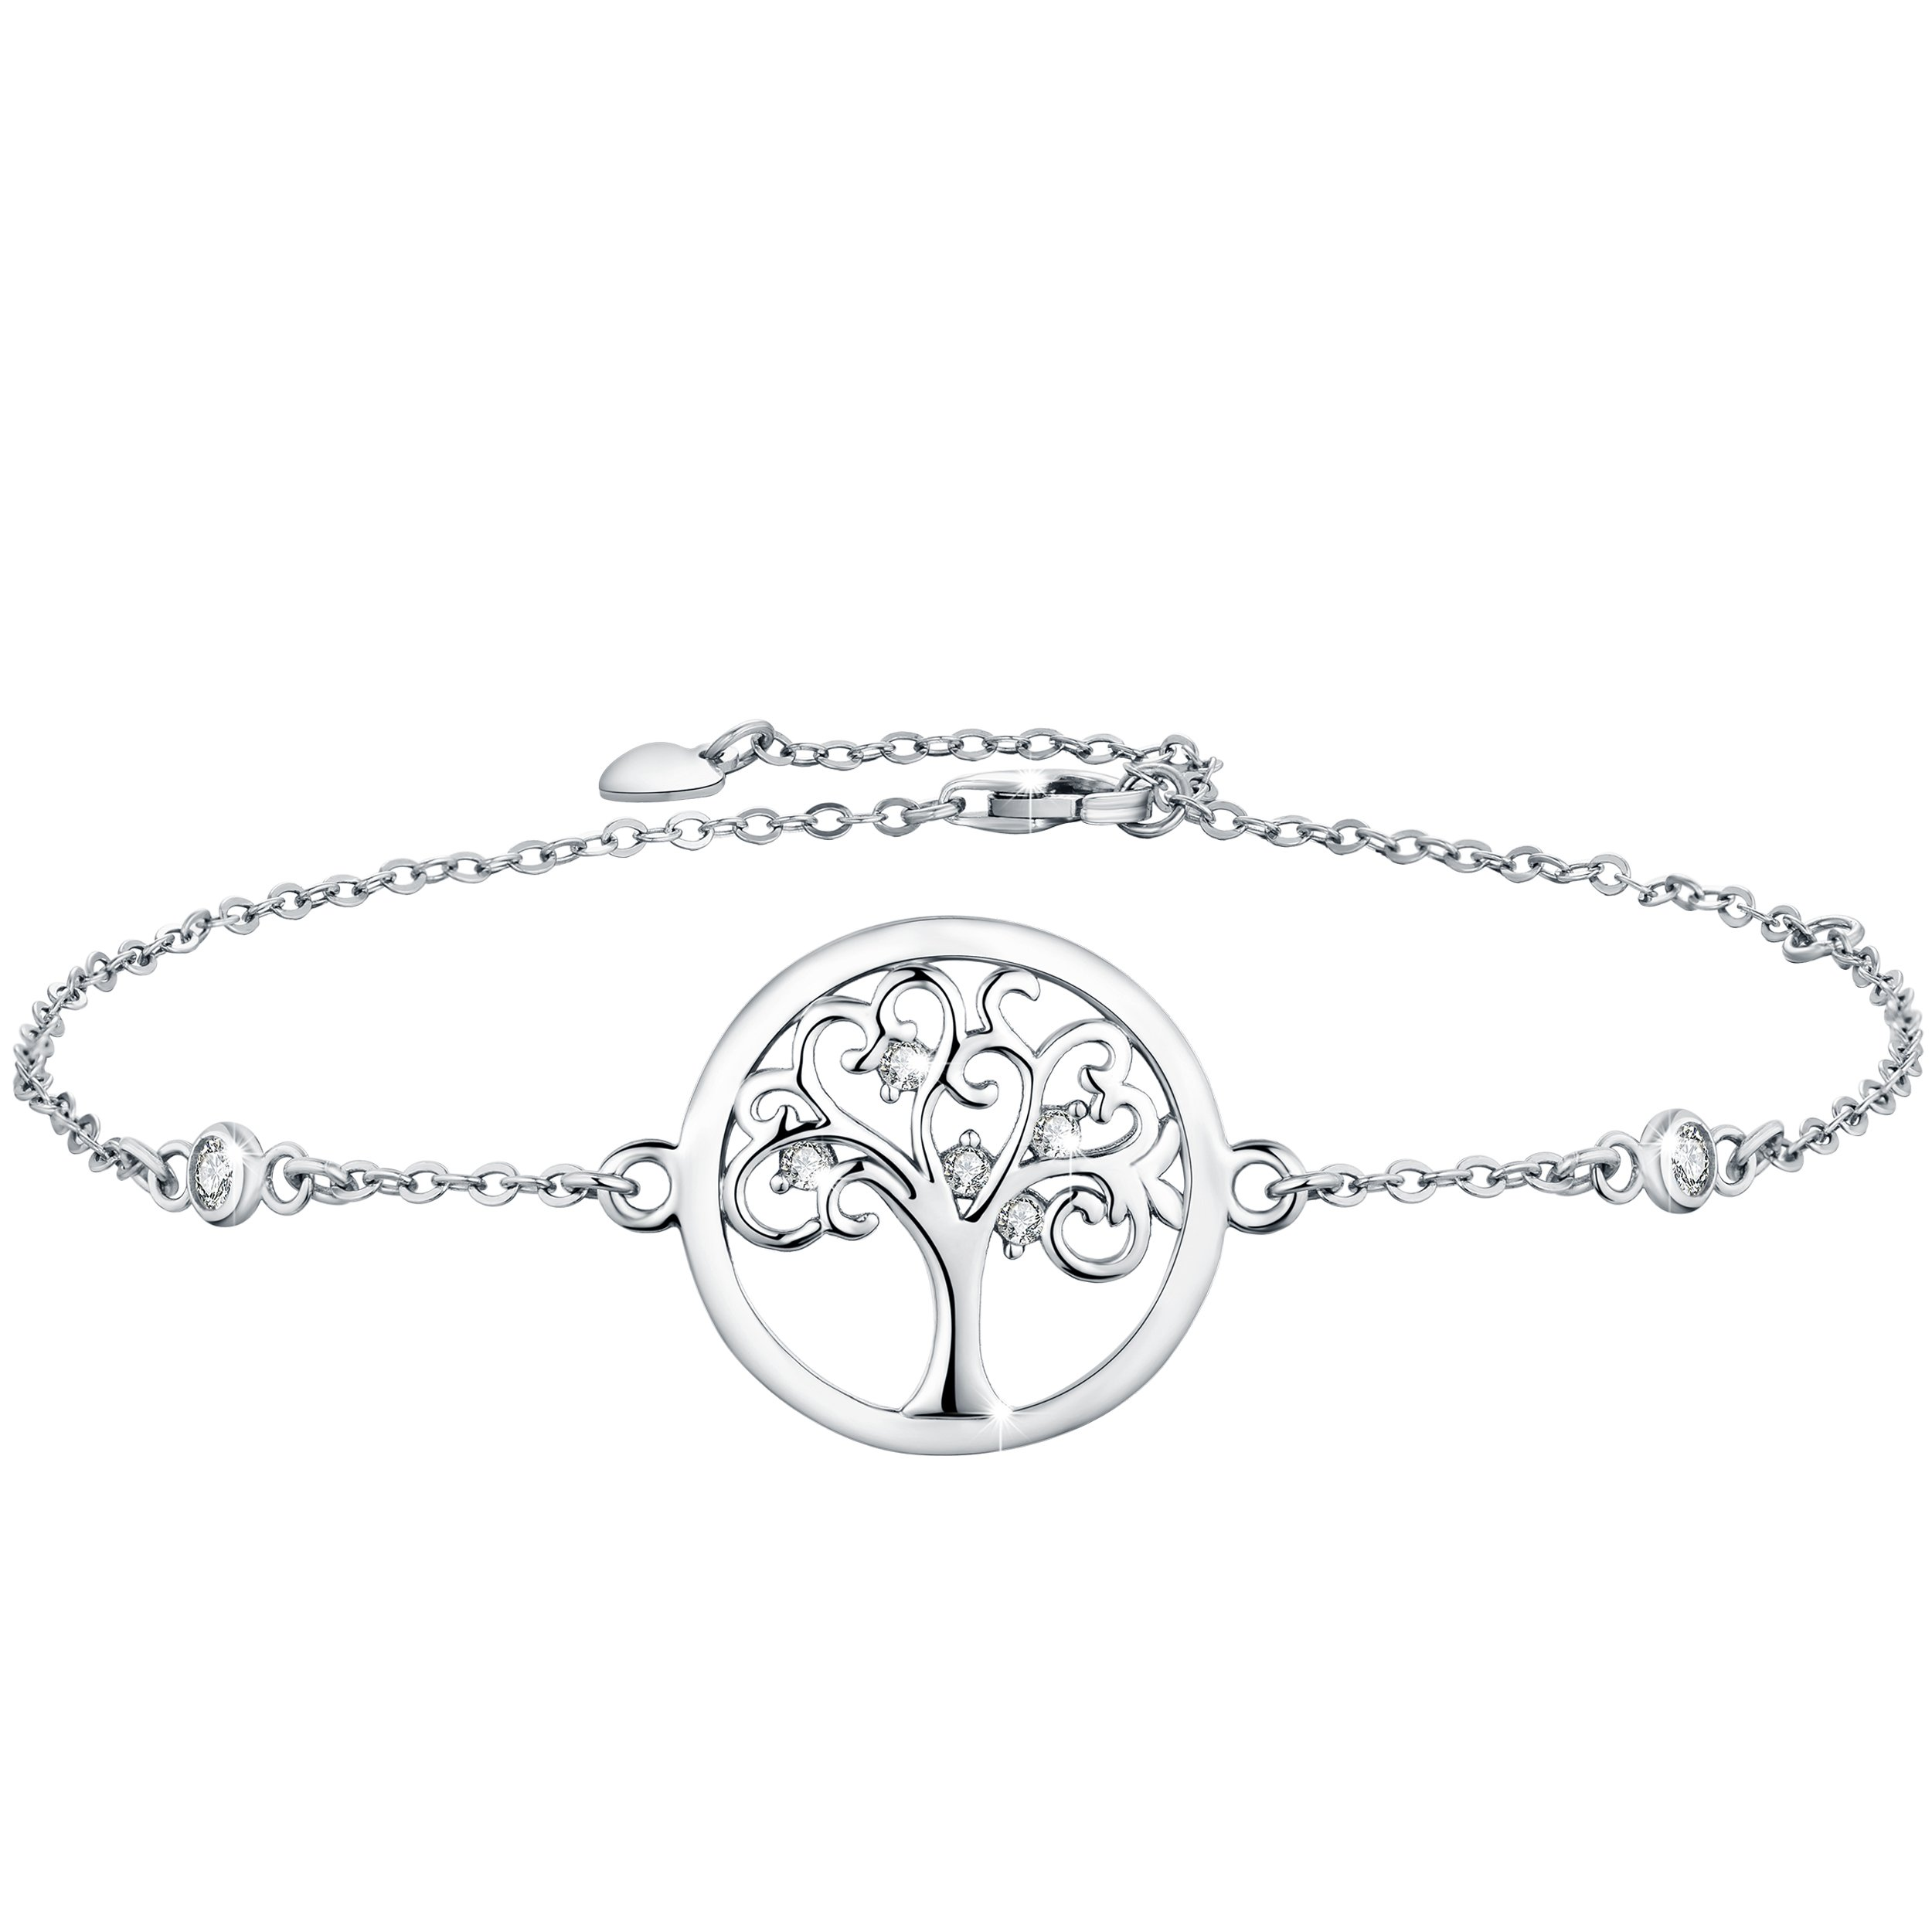 Boniris 925 Sterling Silver Tree of Life Bracelet Womens Handmade Wristband with Cubic Zirconia for Mother's Day, Birthday and Graduation Season